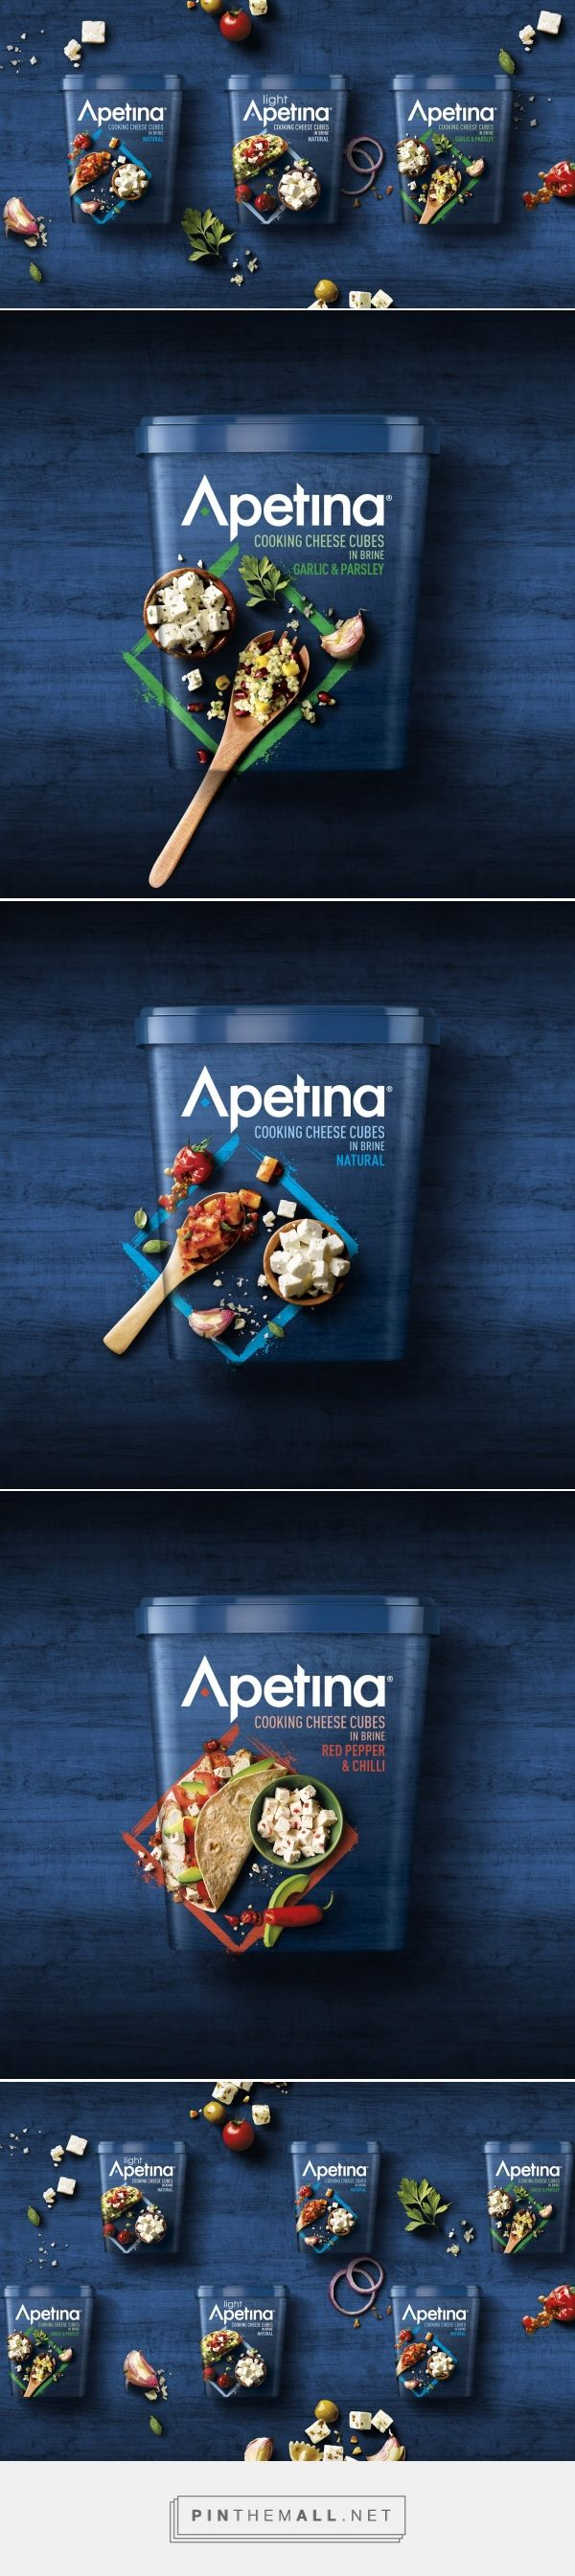 Apetina Redesign - Packaging of the World - Creative Package Design Gallery - http://www.packagingoftheworld.com/2017/06/apetina-redesign.html - created via https://pinthemall.net